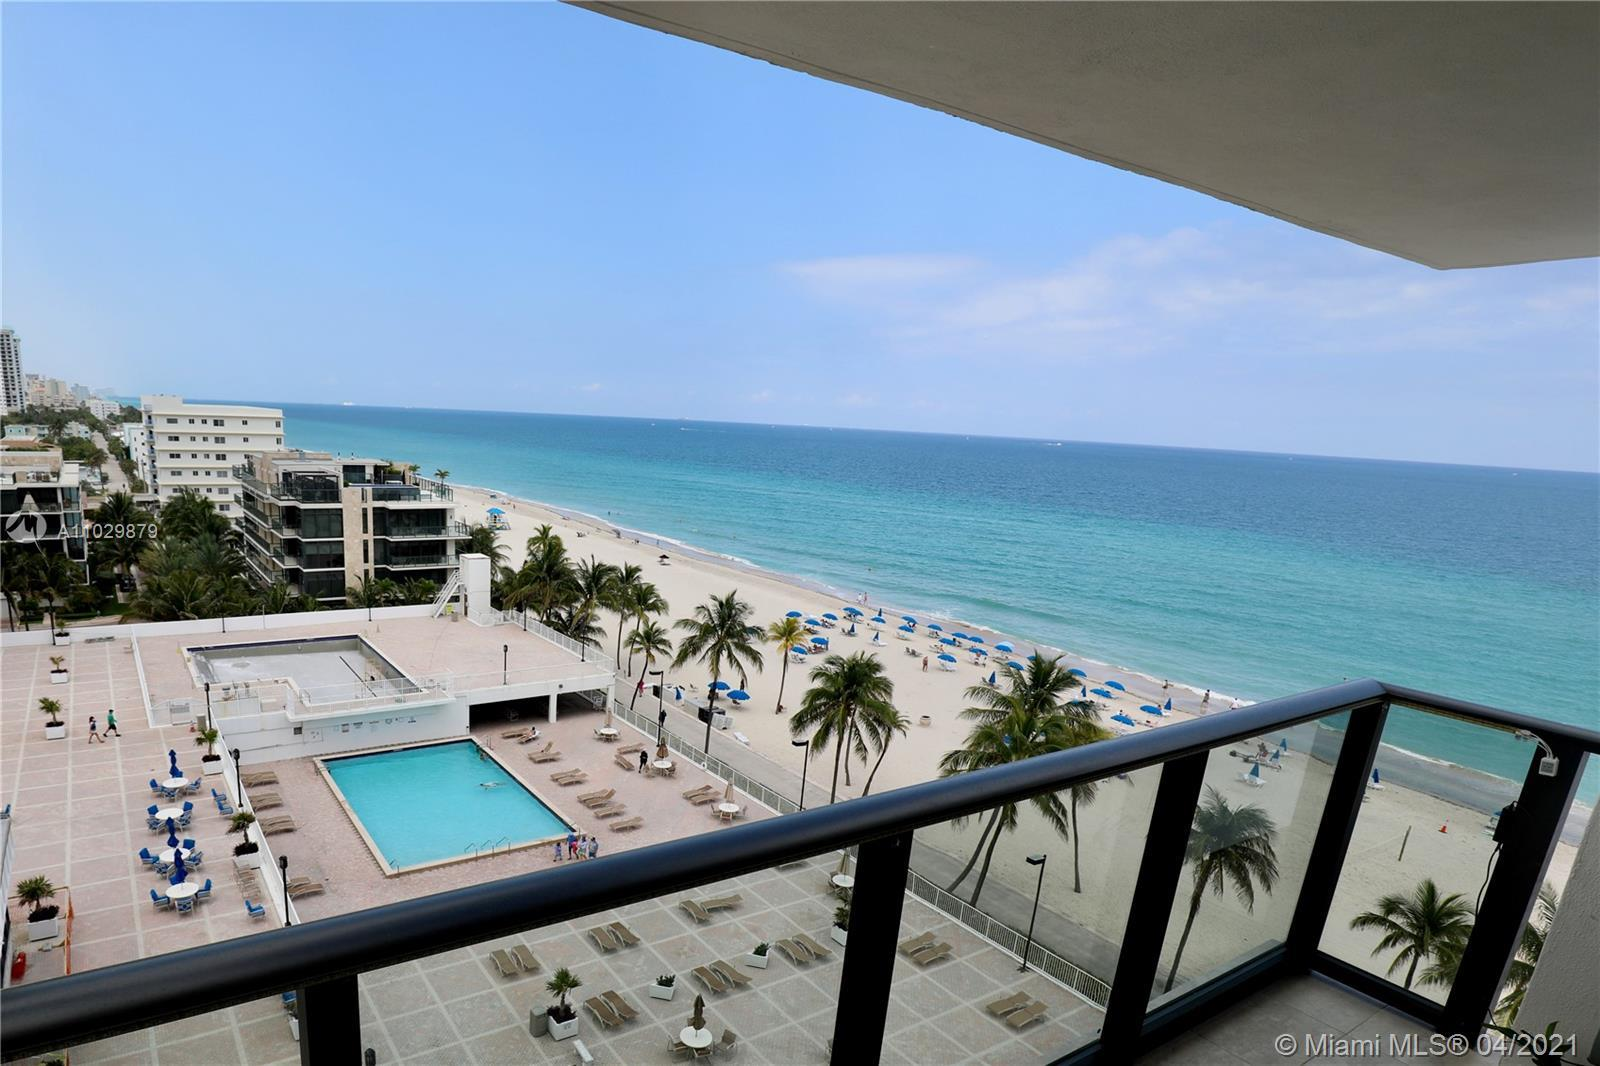 Beautiful ocean front beach condo near the Hollywood Broadwalk & Hallandale Beach. See the ocean fro